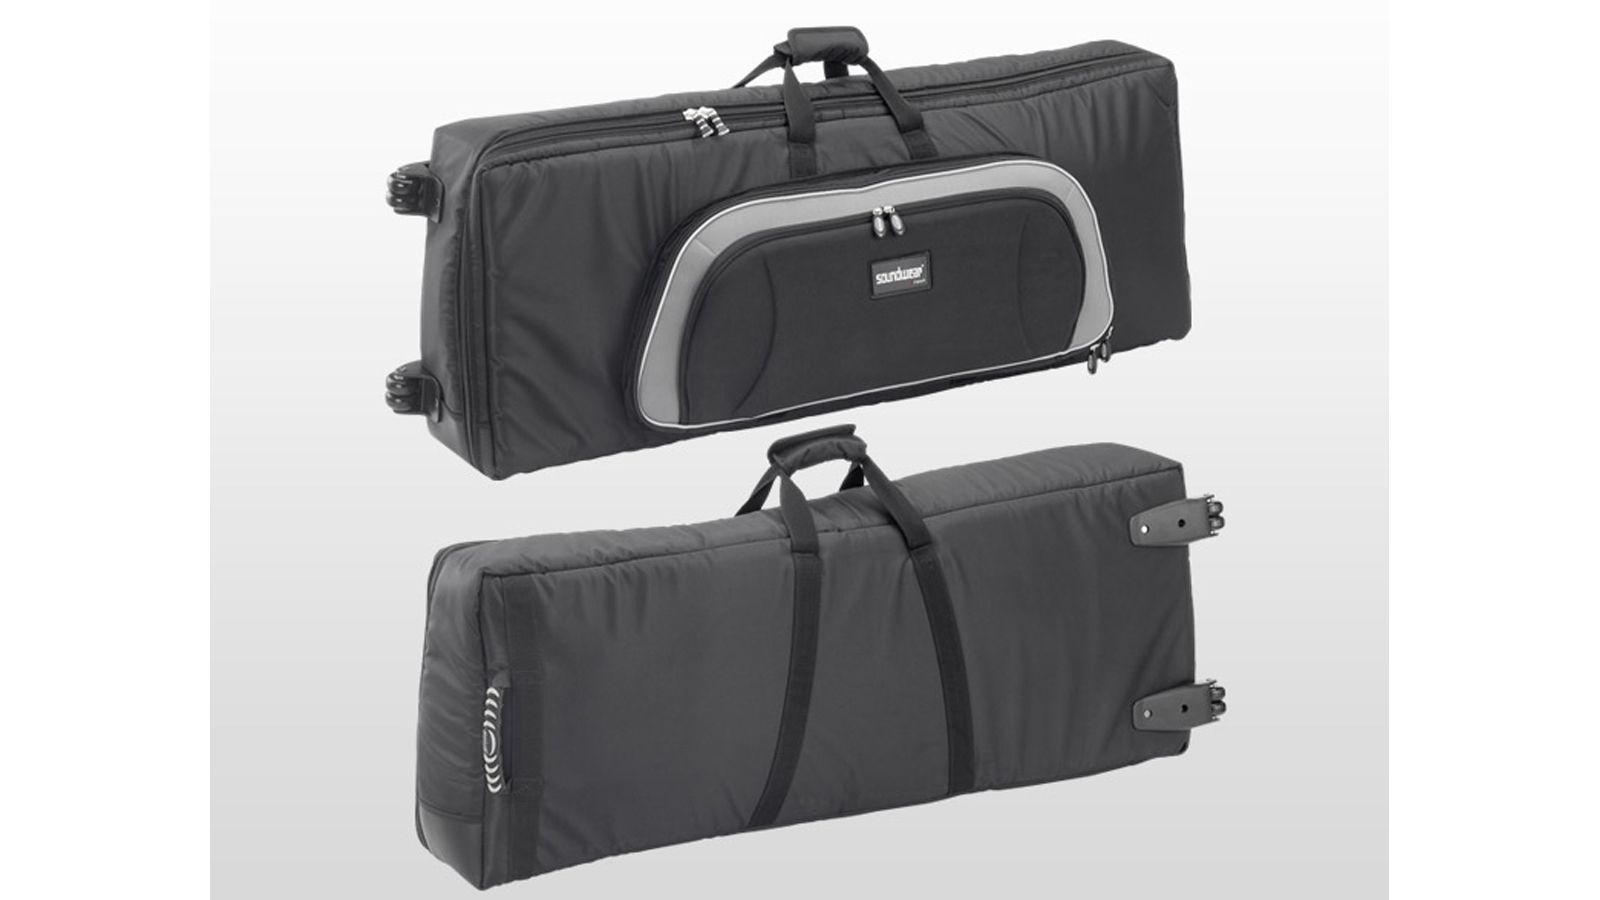 Soundwear Keyboard Bag Professional 101 x 44 x 16 cm